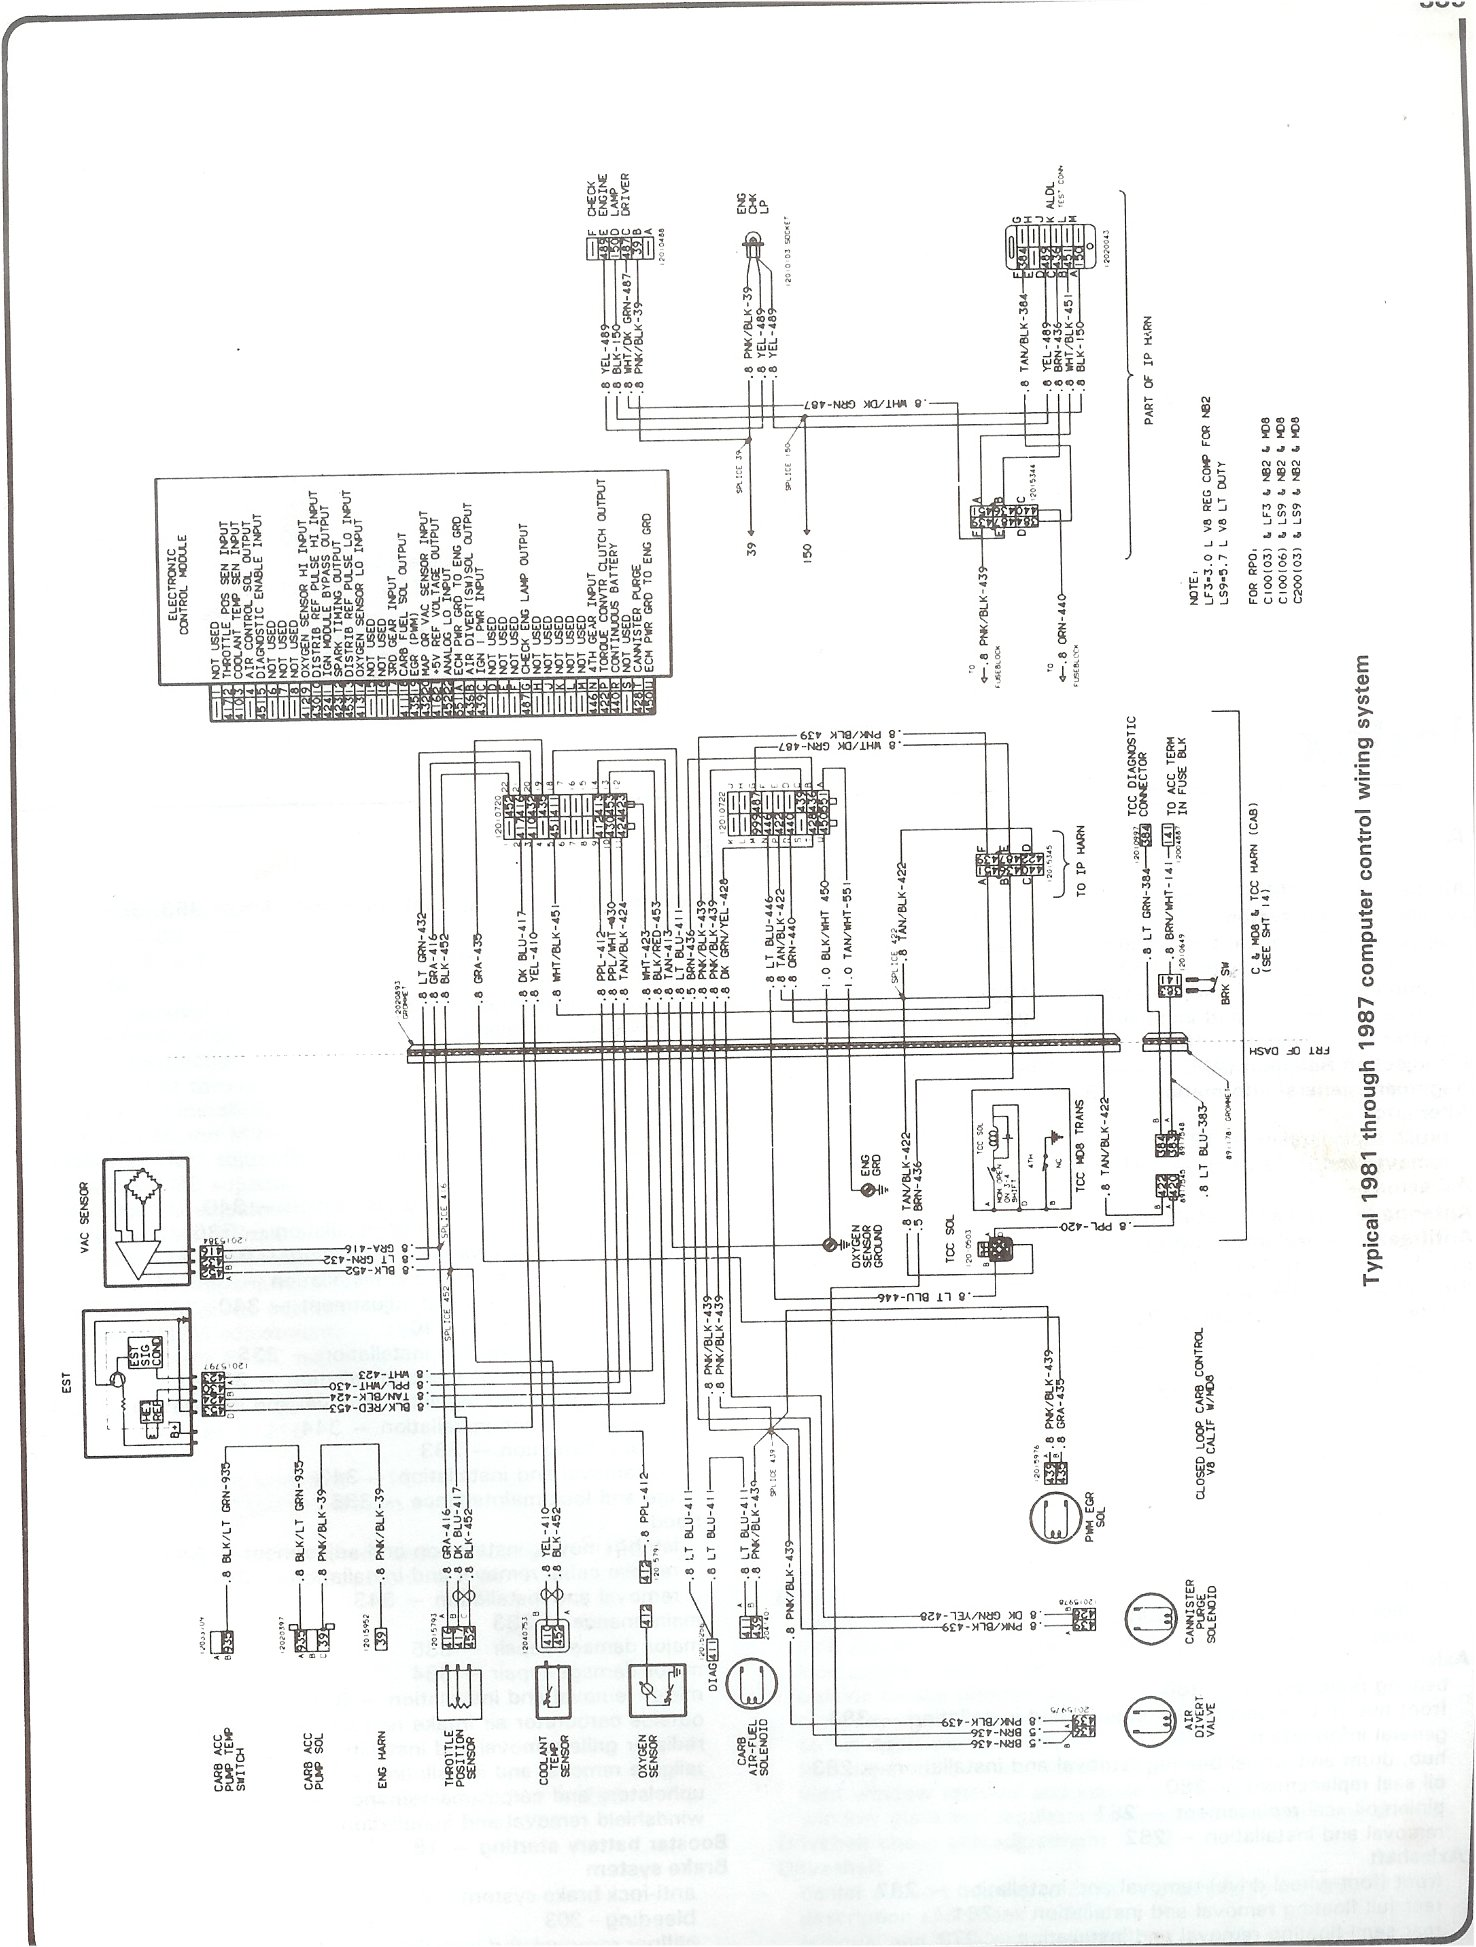 81 87_computer_control_wiring complete 73 87 wiring diagrams 1979 c10 wiring diagram at bayanpartner.co